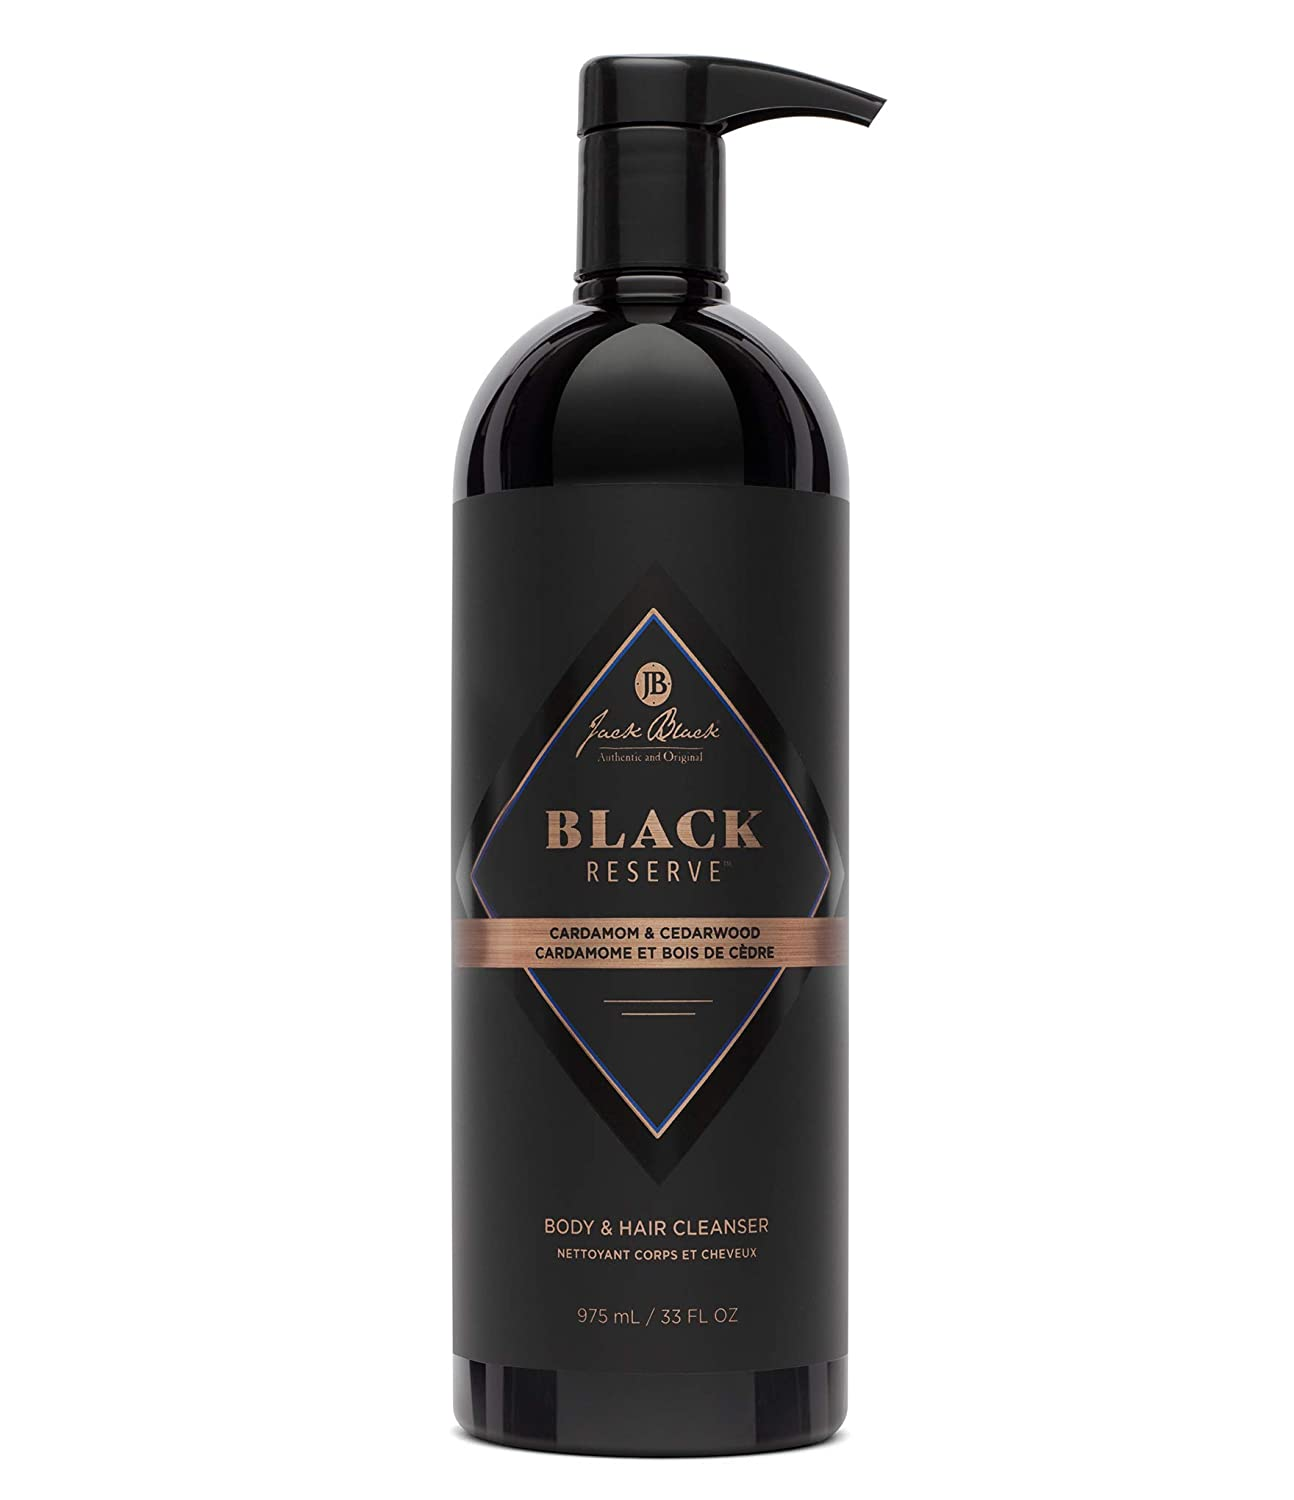 jack black black reserve body and hair cleaner with cardmom, cedarwood, 33 fluid ounces; best shampoos for men